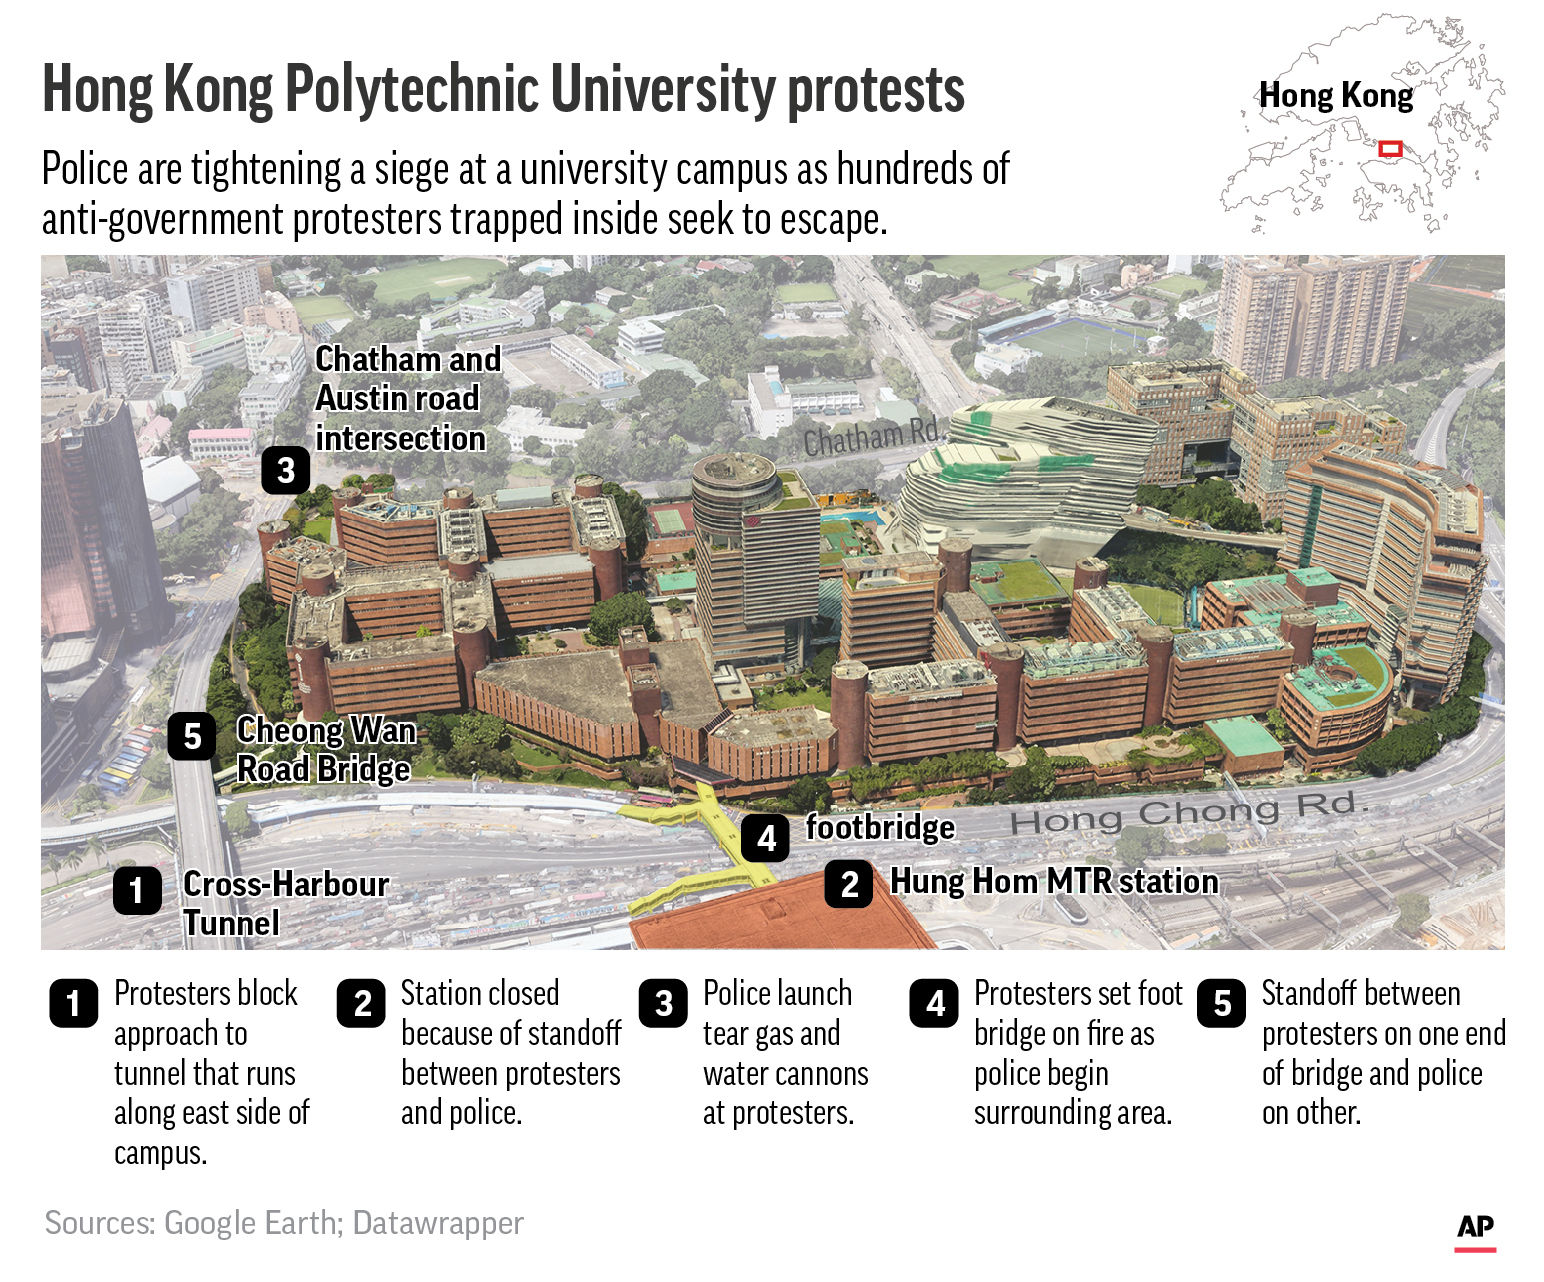 Moves red box in inset at top of graphic to correct location; Adds additional key events; maps shows Hong Kong Polytechnic University and locates key events in protester clashes with police;